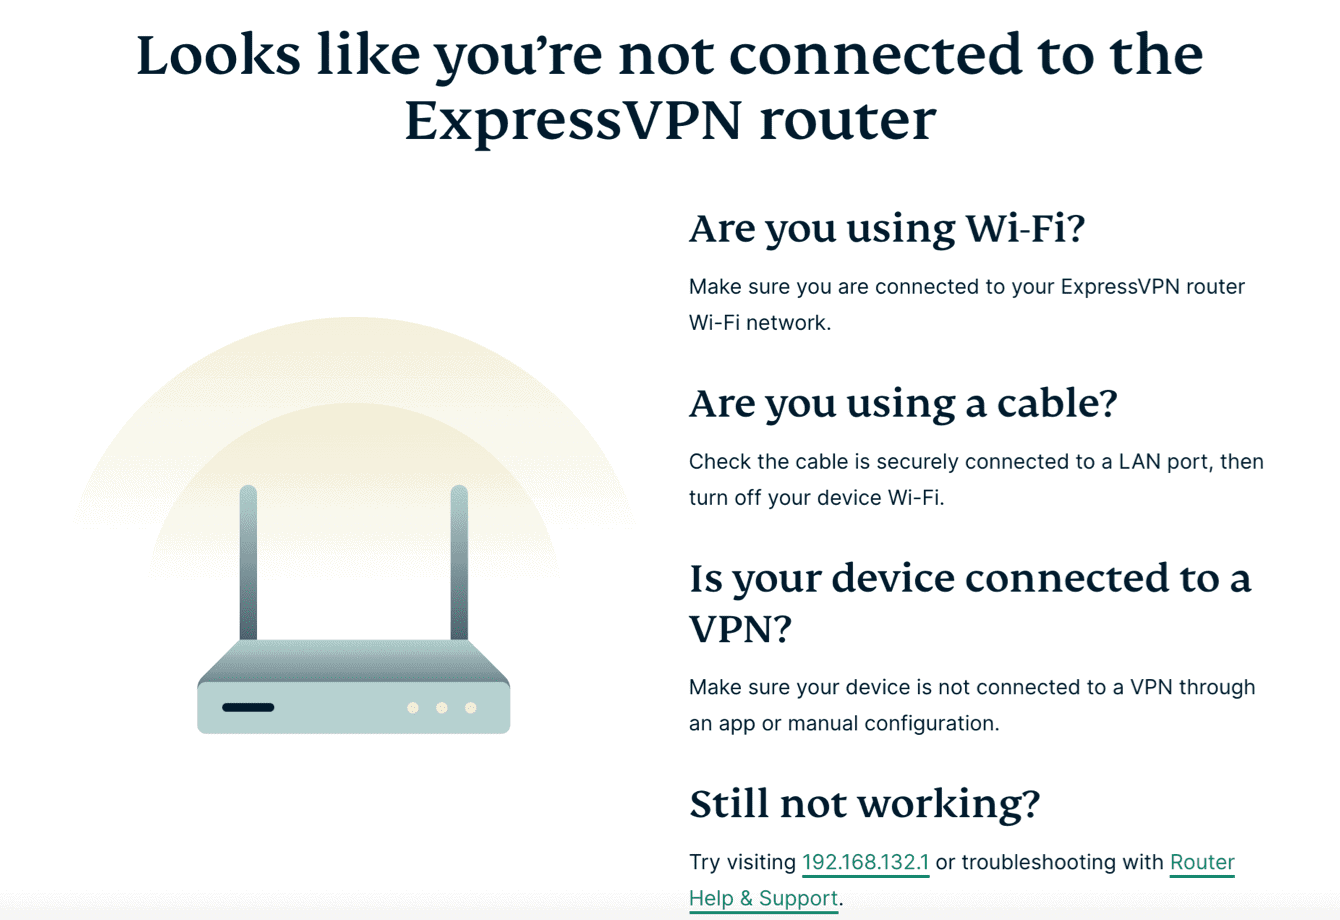 The ExpressVPN router dashboard when you're not connected to the router.